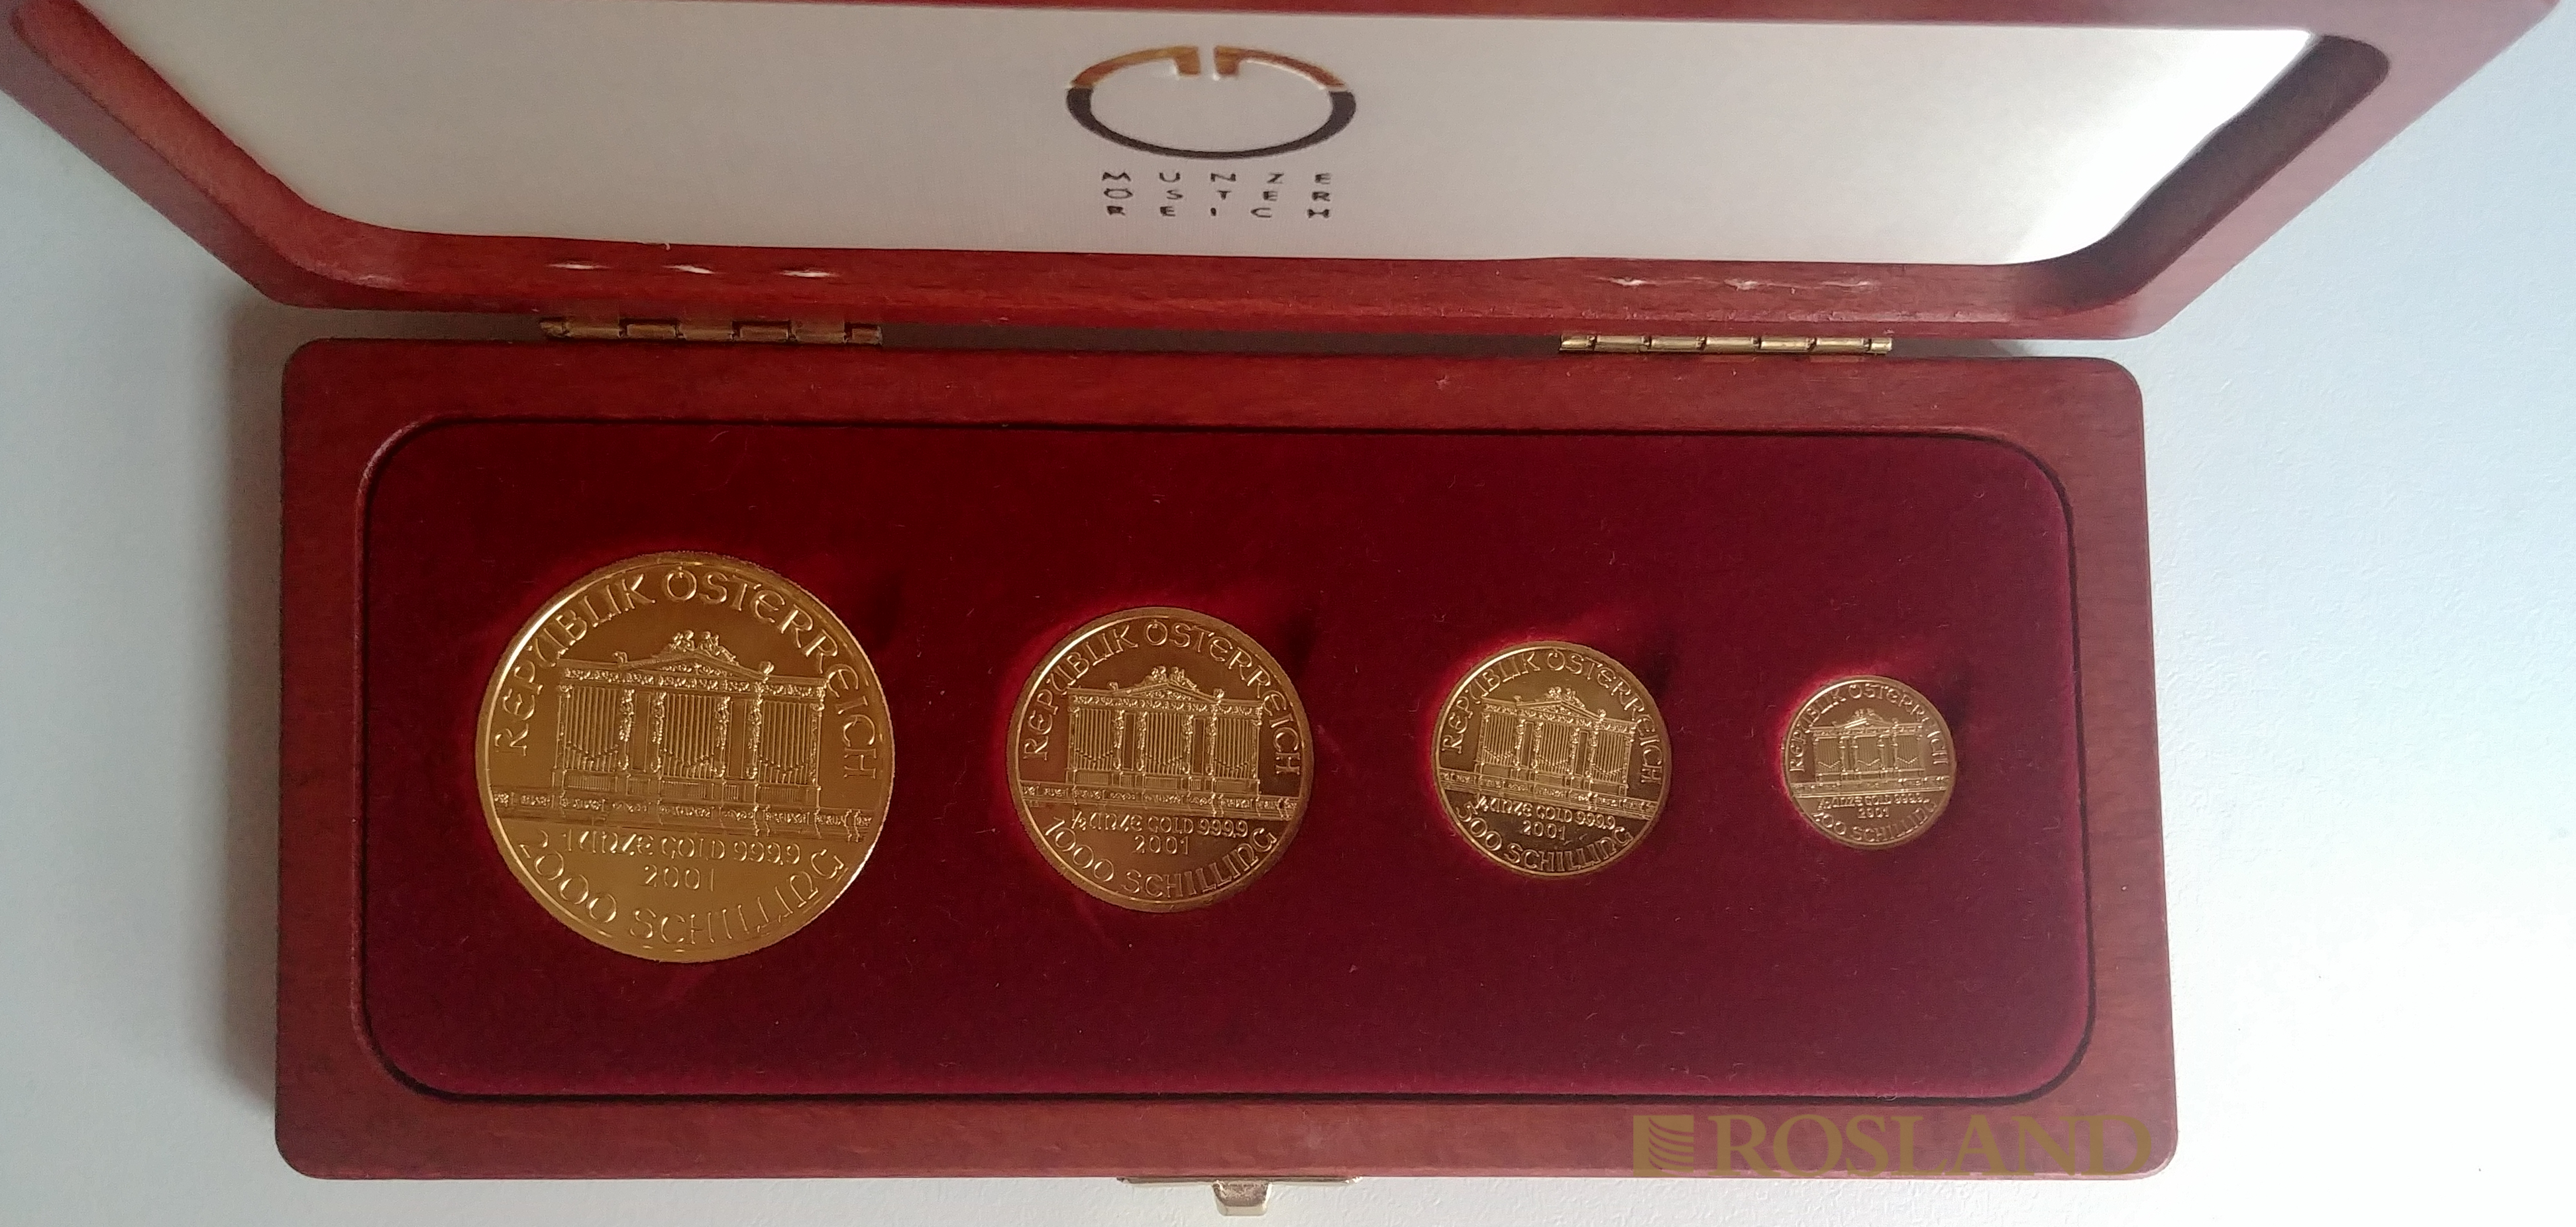 1,85 Unzen 4 Goldmünzen Wiener Philharmoniker 2001 (Set, PP-Like, Limited)